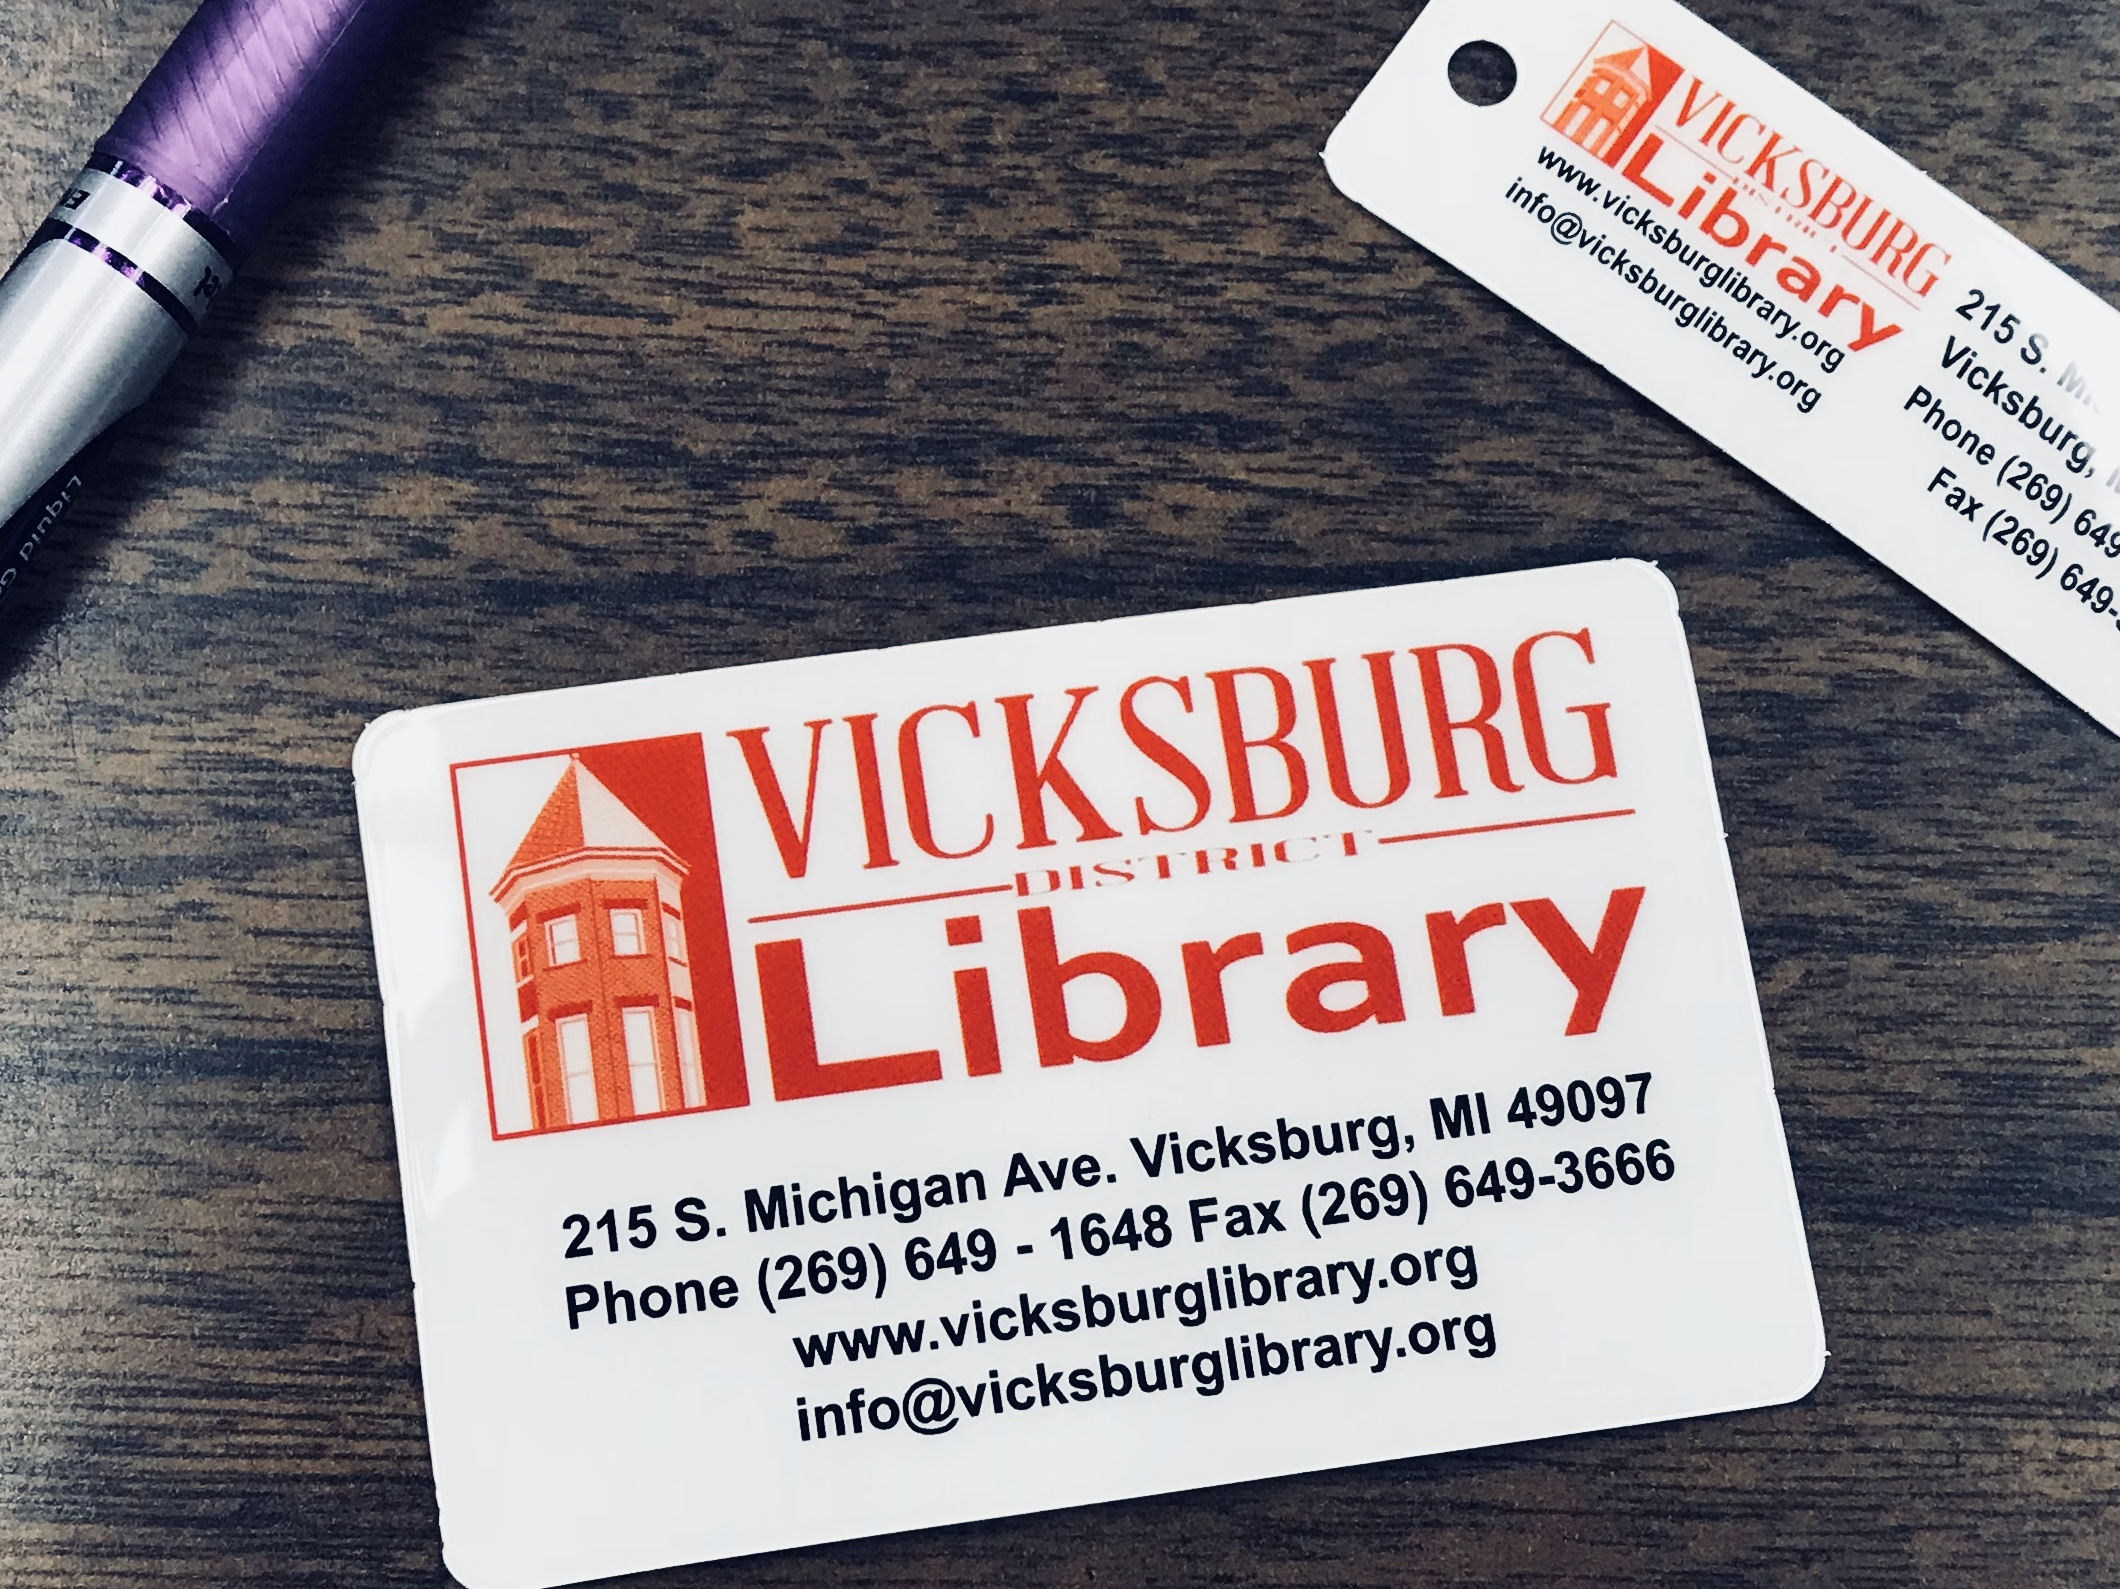 Getting a Library Card – Vicksburg District Library